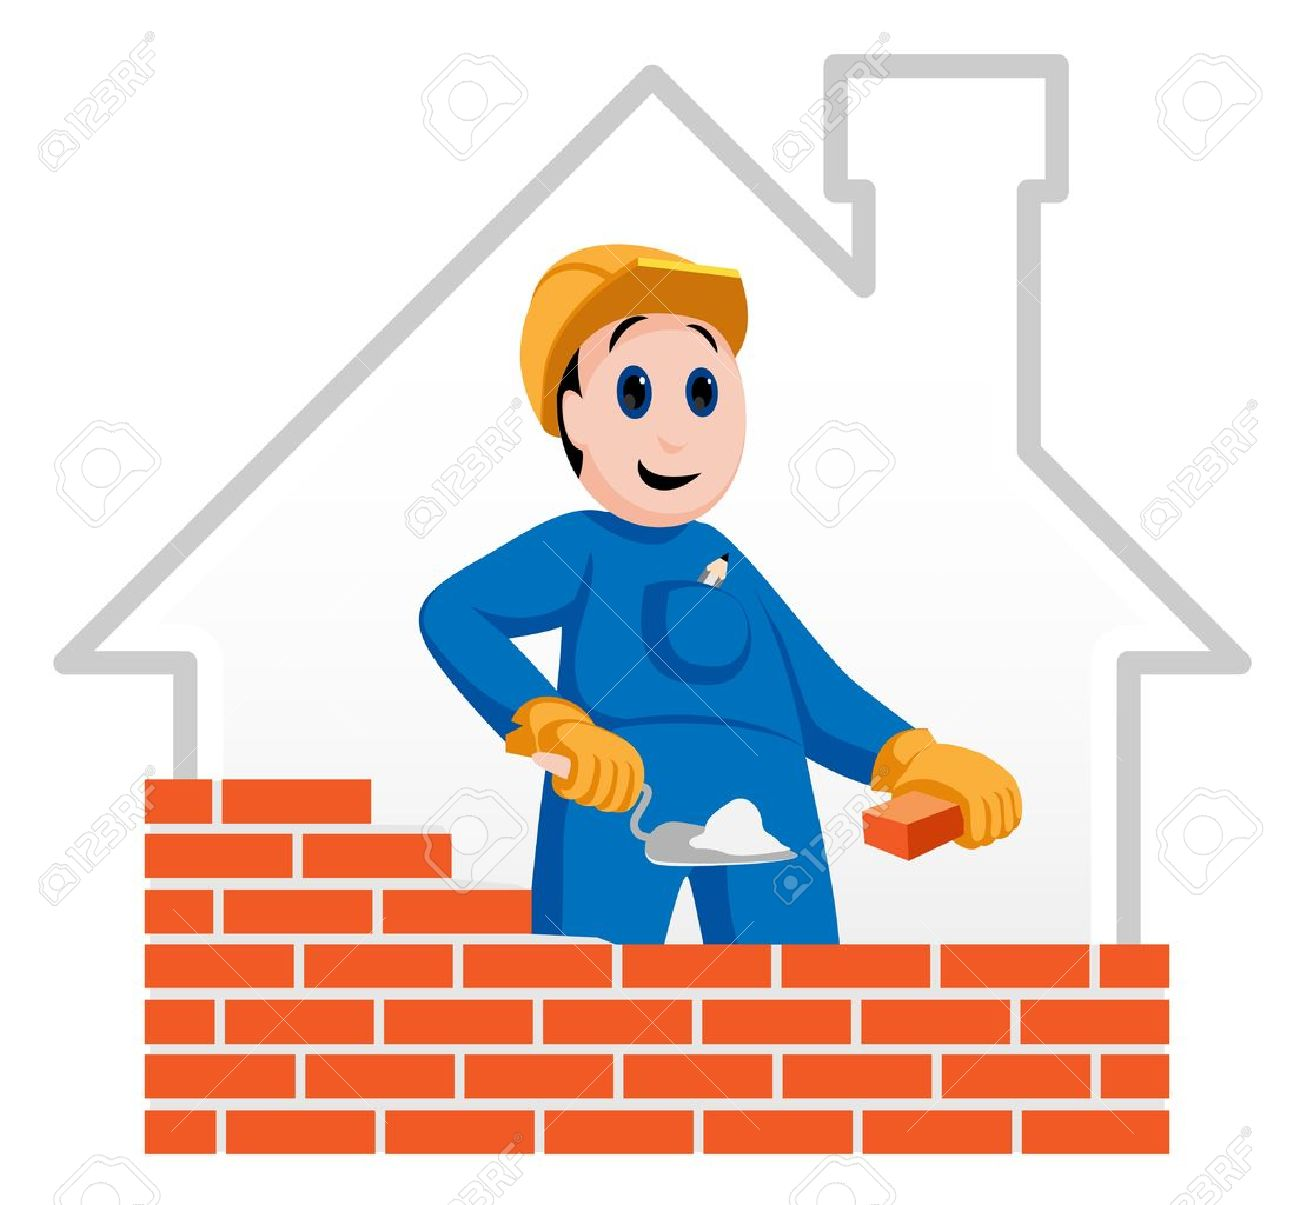 Building Construction Workers Clipart Construction Worker Building a